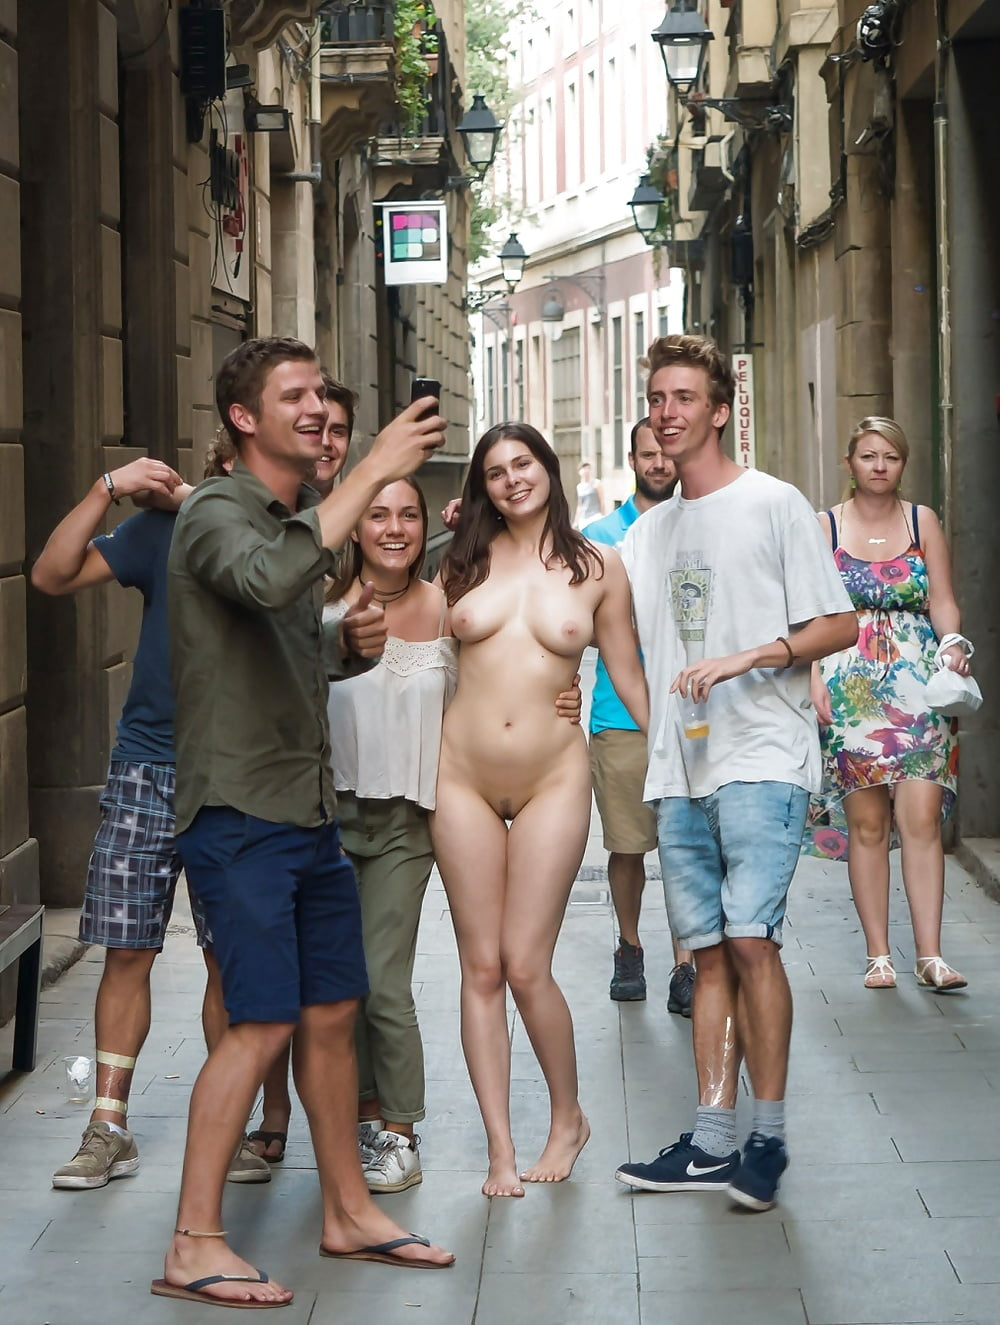 Girls sex in the city naked, nude models ride bike